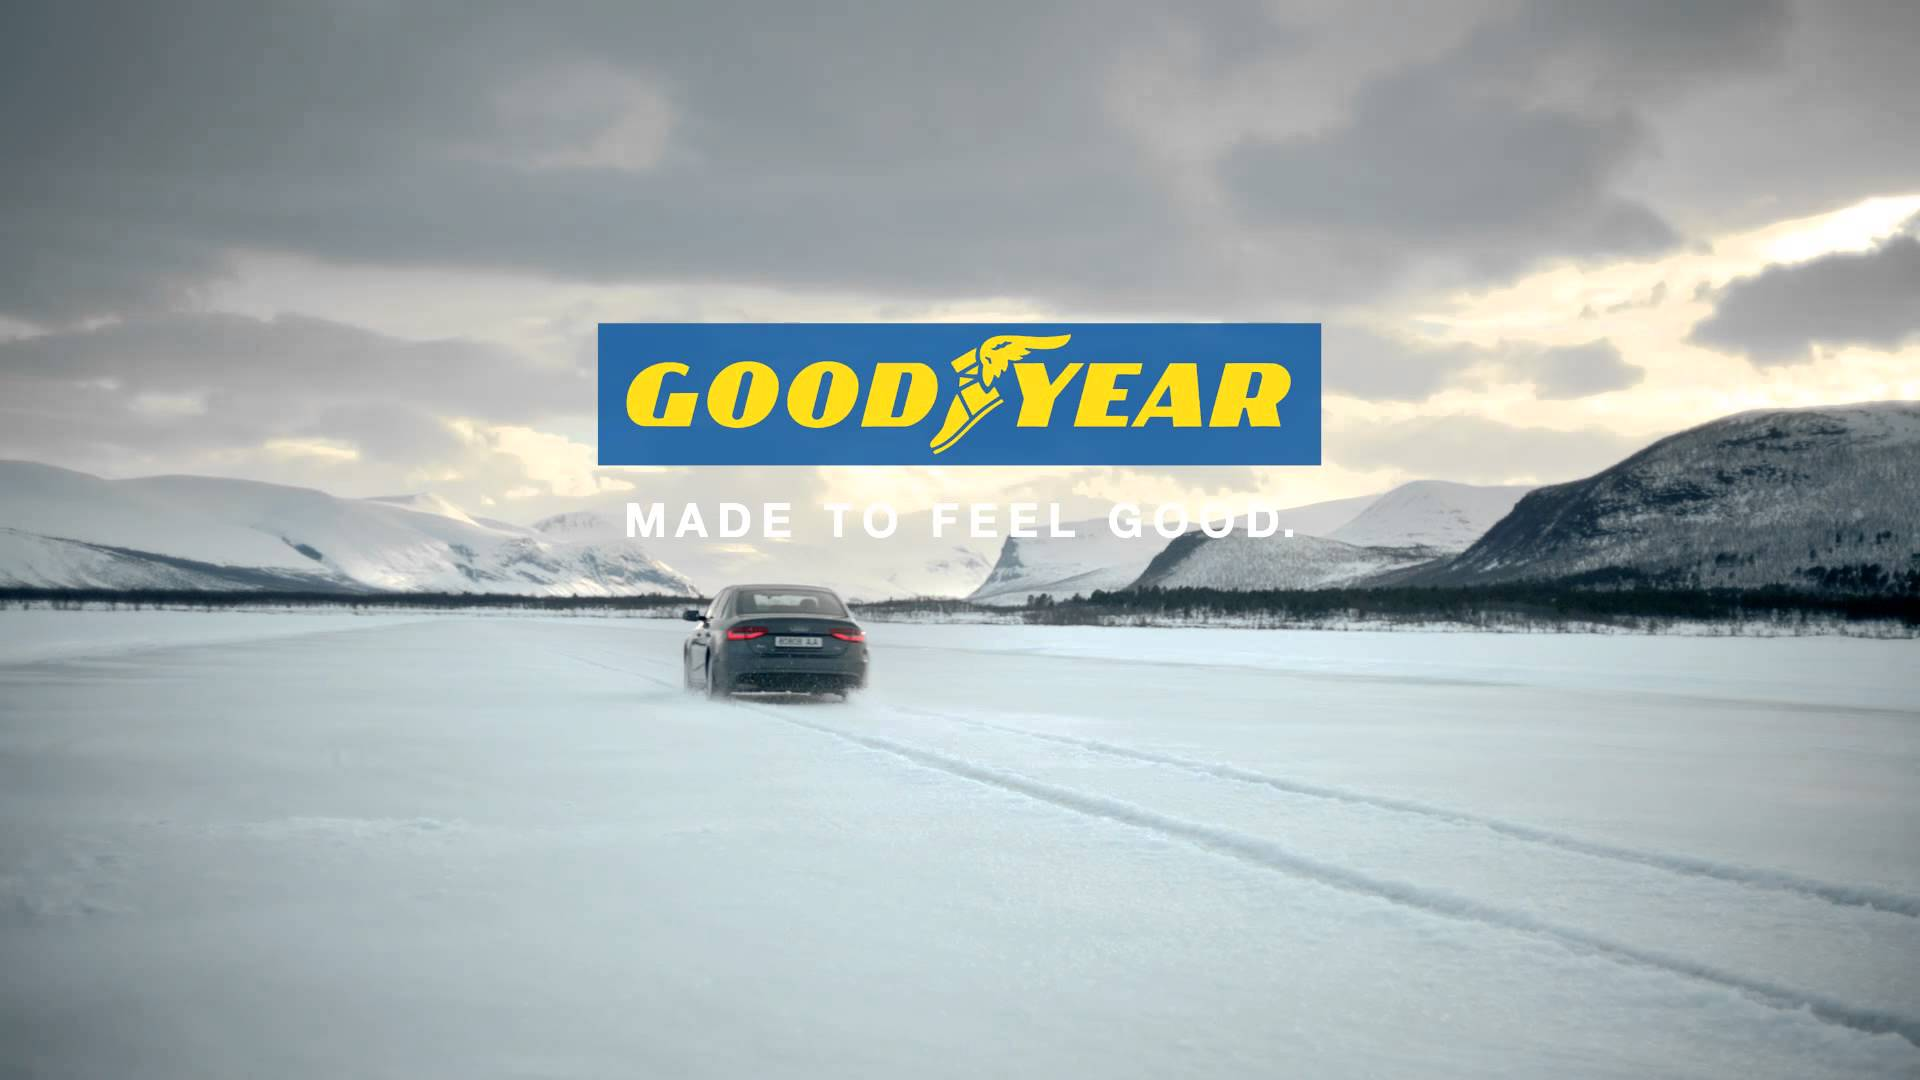 Goodyear Recognized as Most Admired Tire Manufacturer in the World